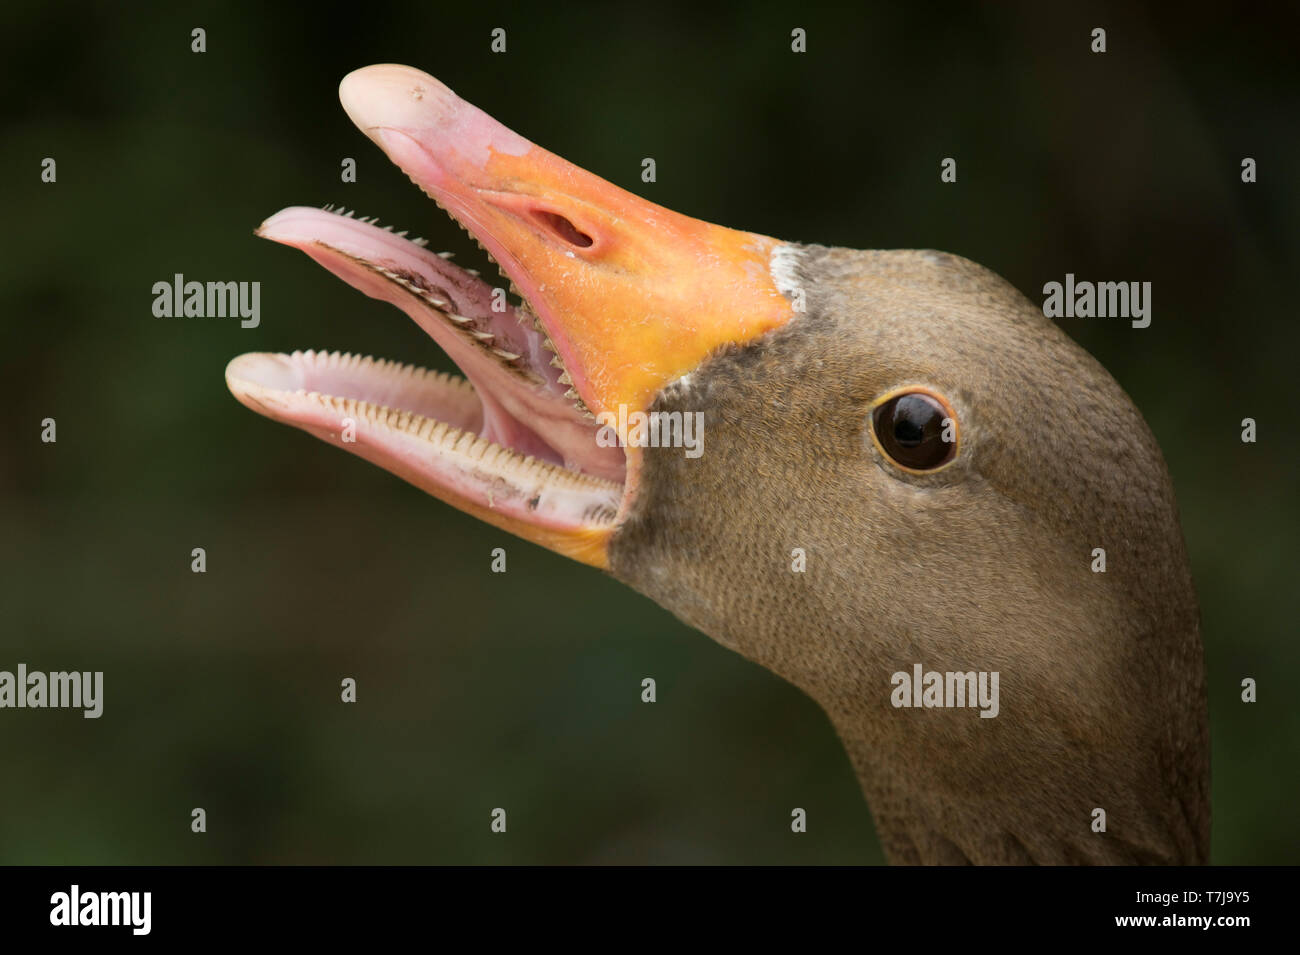 Head of a female greylag goose (Anser anser) with beak open and hissing to protect its goslings, Arundel WWT, July - Stock Image